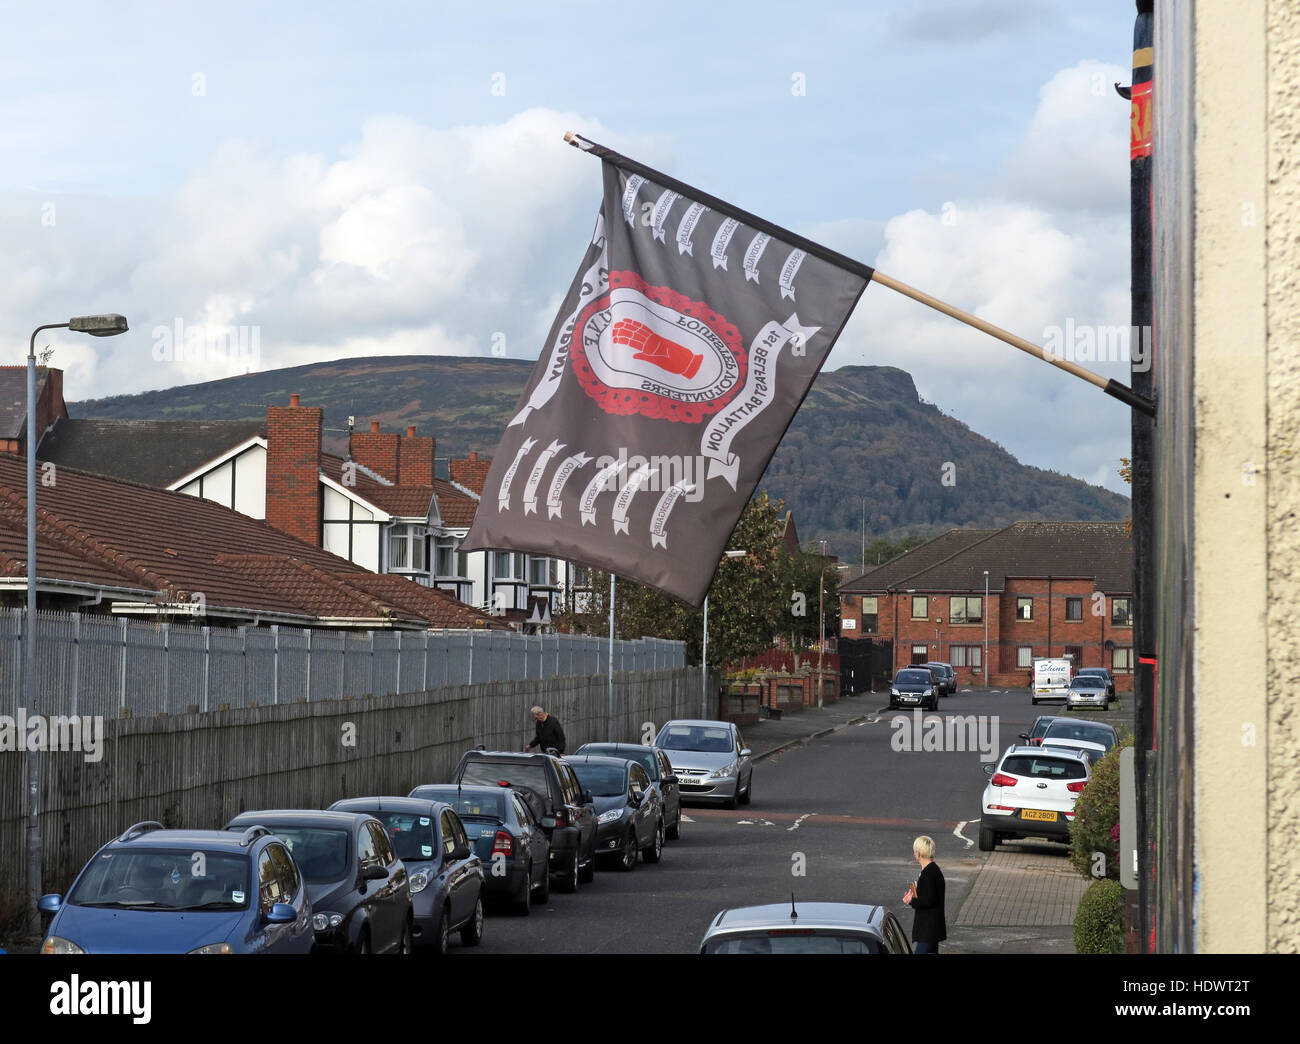 Red hand,Ulster,memorial,UFF,Unionist,mural,off,Shankill,rd,Road,West Belfast,Northern Ireland,UK,Ireland,fighter,fighting,UVF,flag,Ulster,Volunteer,Force,Ulster Volunteer Force,GoTonySmith,@HotpixUK,Tony,Smith,UK,GB,Great,Britain,United,Kingdom,Irish,British,Ireland,problem,with,problem with,issue with,NI,Northern,Northern Ireland,Belfast,City,Centre,Art,Artists,the,troubles,The Troubles,Good Friday Agreement,Peace,honour,painting,wall,walls,tribute,Unionist,unionism,Protestant,community,Fight,Justice,West,Beal,feirste,martyrs,social,tour,tourism,tourists,urban,six,counties,6,backdrop,county,Antrim,UVF,DUP,British,GB,Empire,Buy Pictures of,Buy Images Of,Images of,Stock Images,Tony Smith,United Kingdom,Great Britain,British Isles,Belfast protestant community,Peoples army